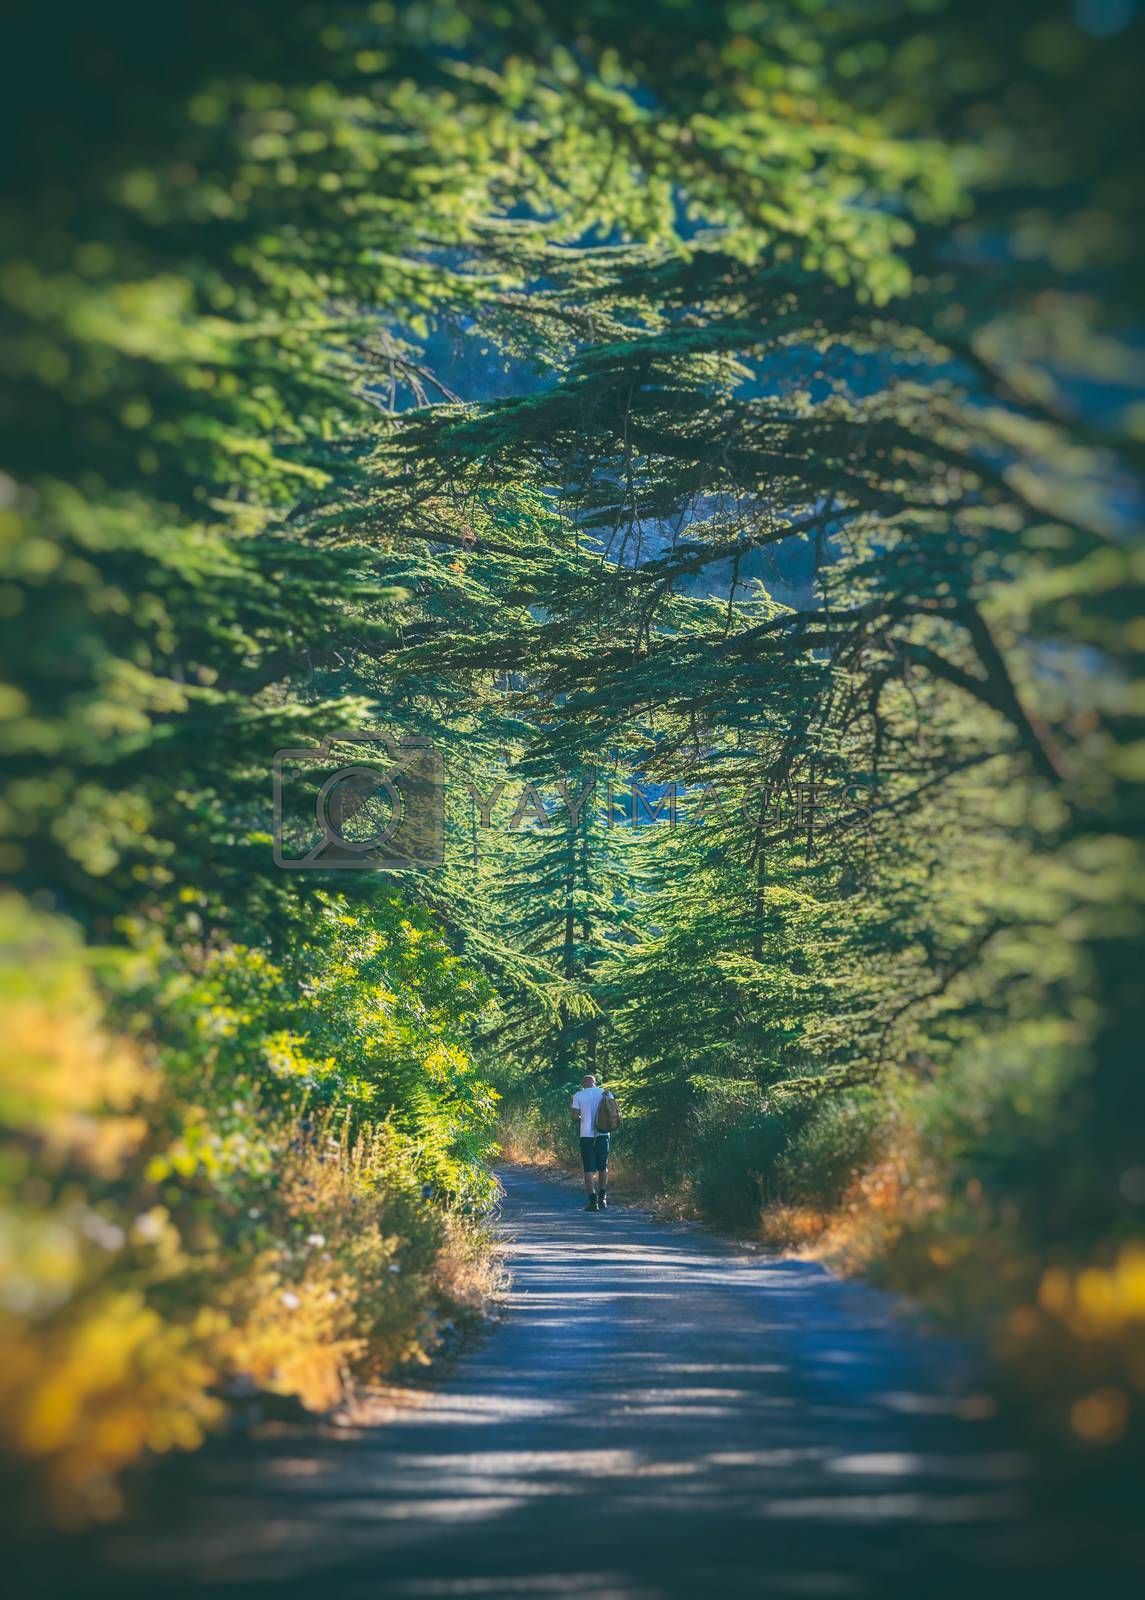 Happy Summer Adventure. Guy Walking Along the Trail with Trees. Enjoying Hiking to Chouf Cedars Reserve. Lebanon